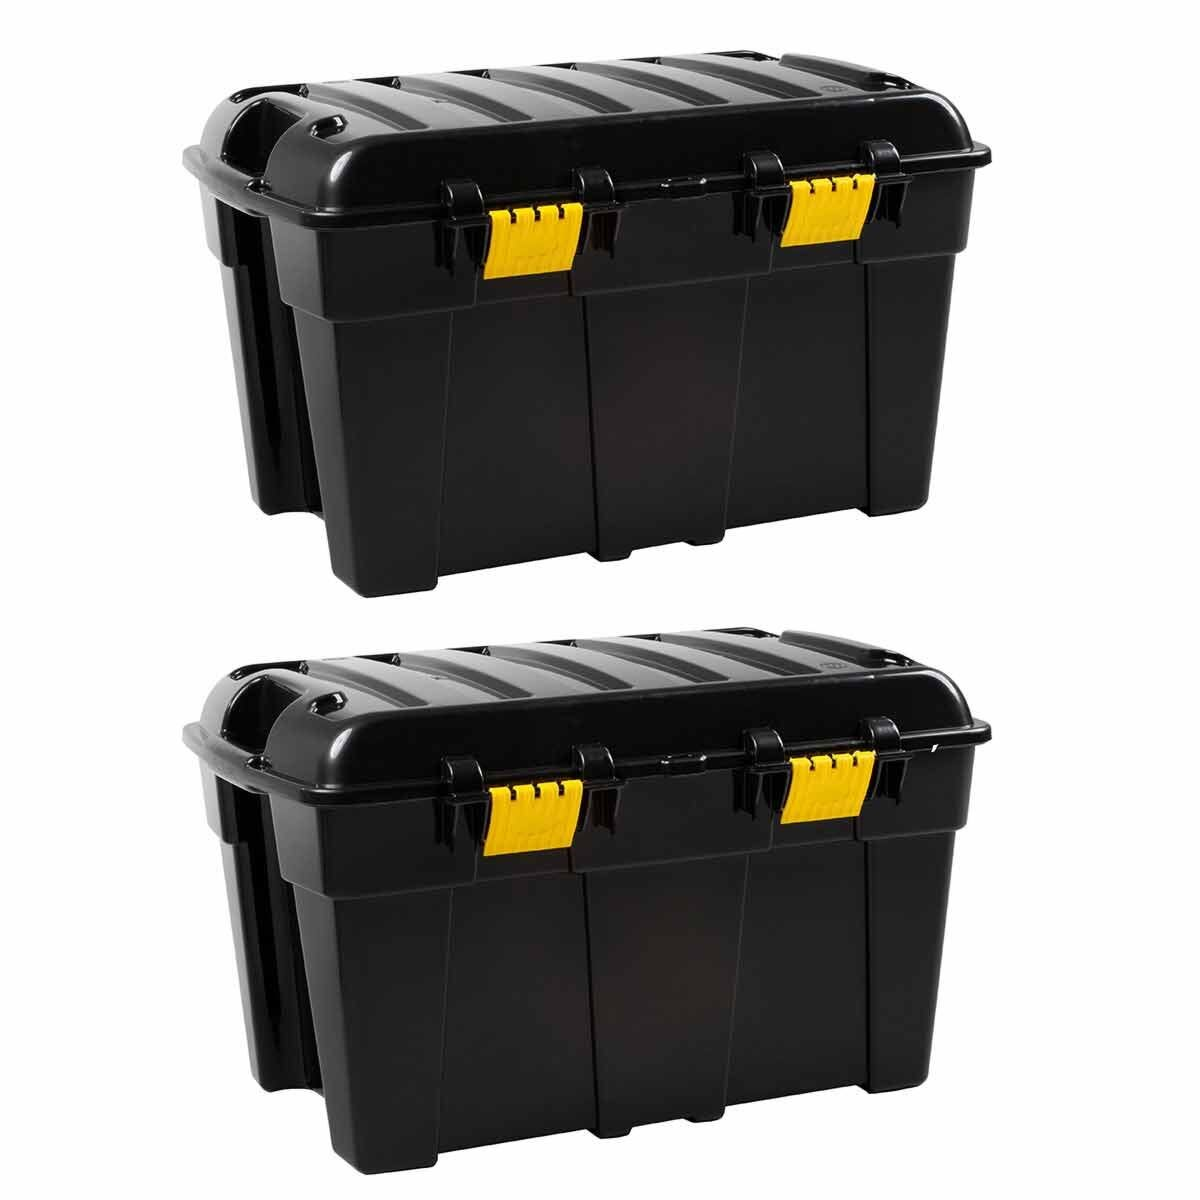 Wham DIY Storage Chest 48 Litre Pack of 2